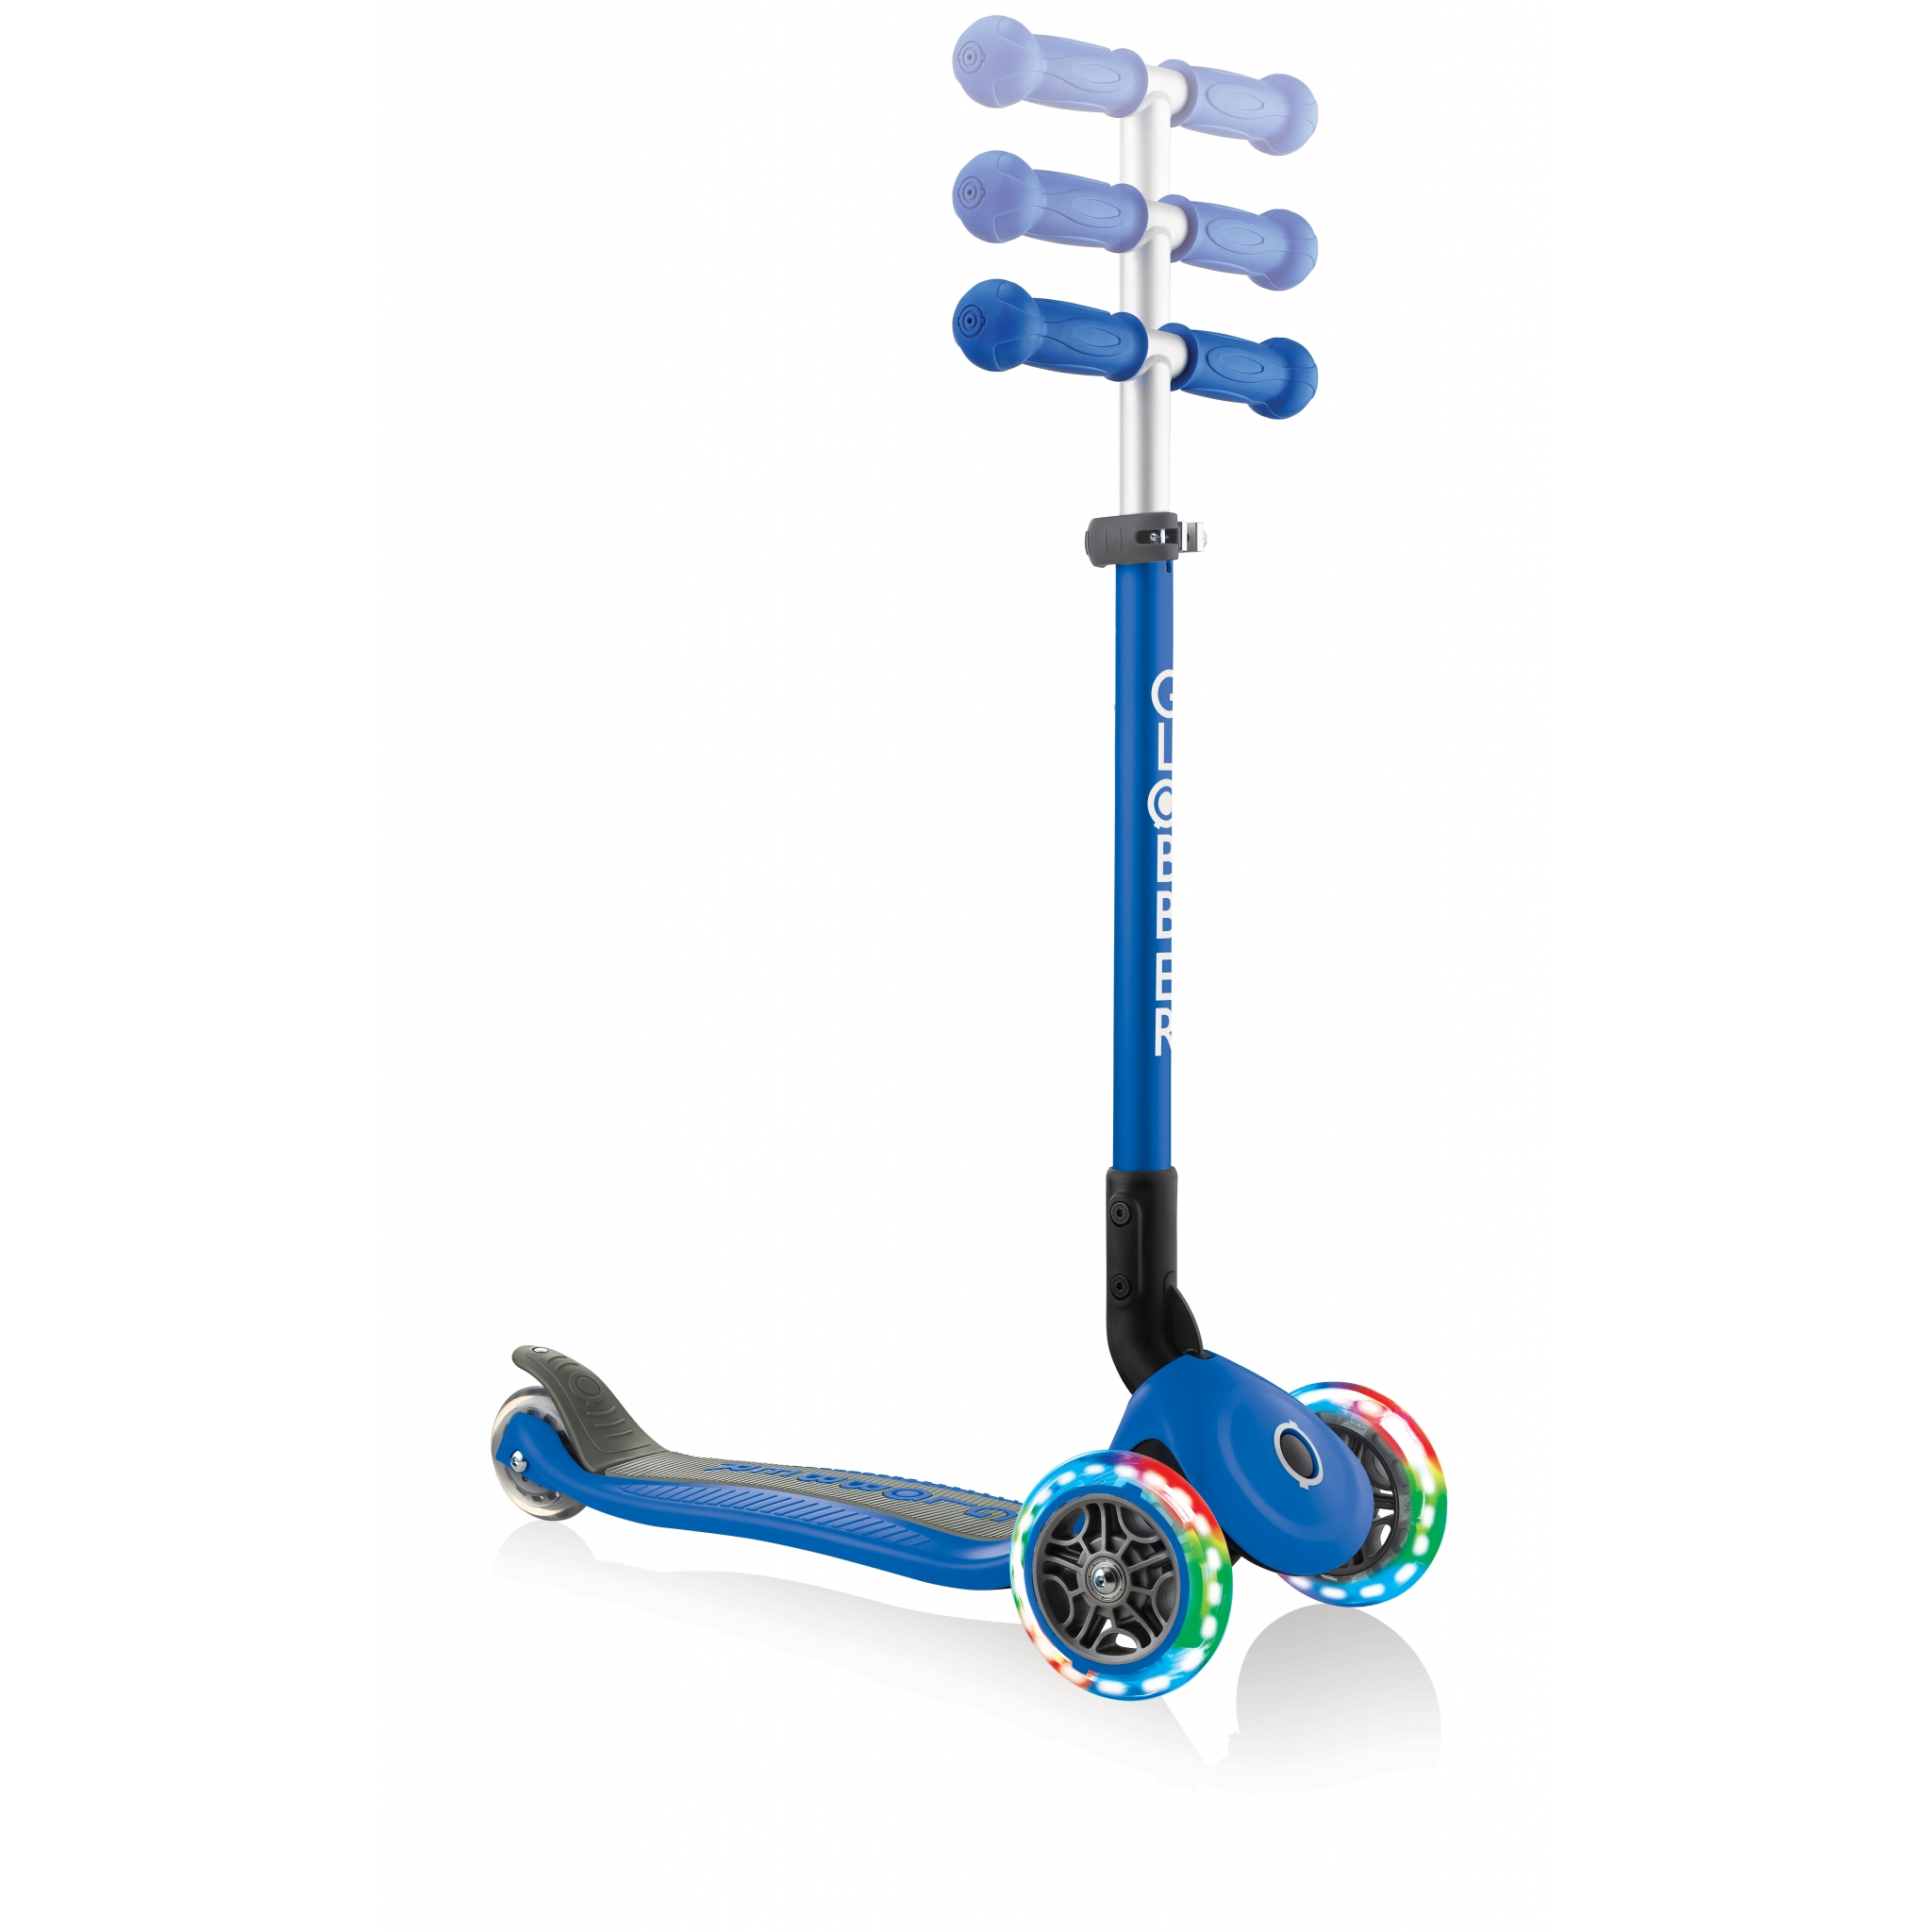 PRIMO-FOLDABLE-LIGHTS-adjustable-scooter-for-kids-navy-blue